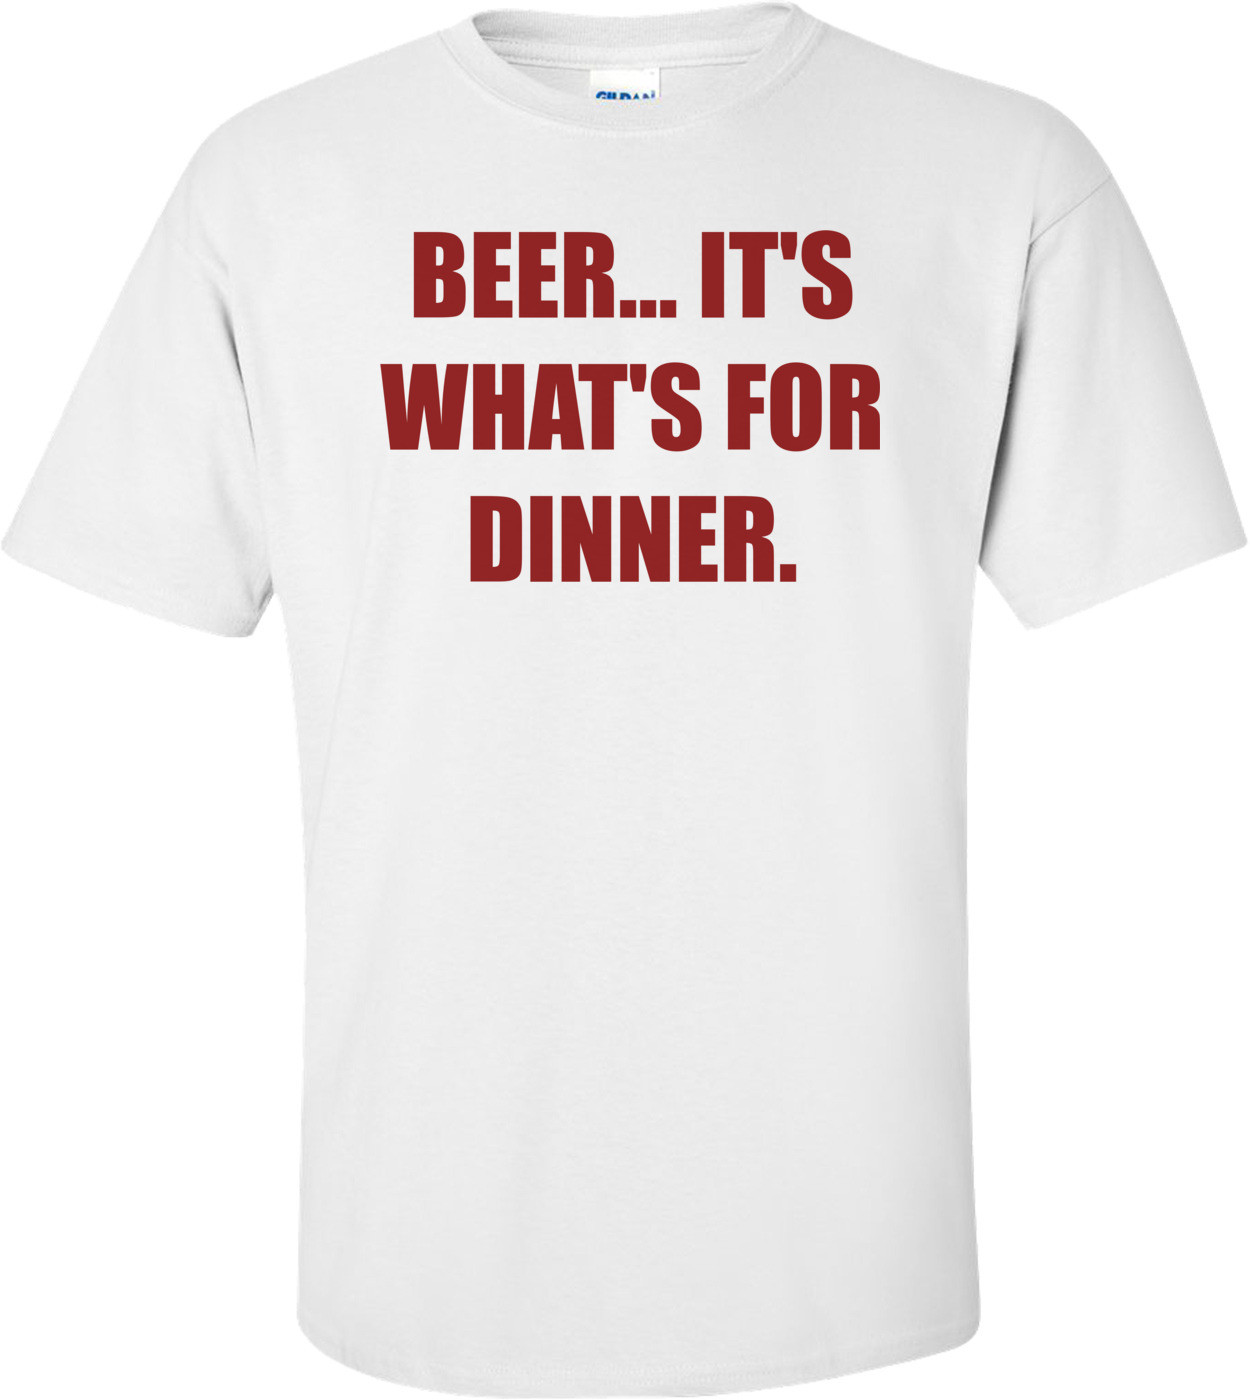 BEER... IT'S WHAT'S FOR DINNER. Shirt